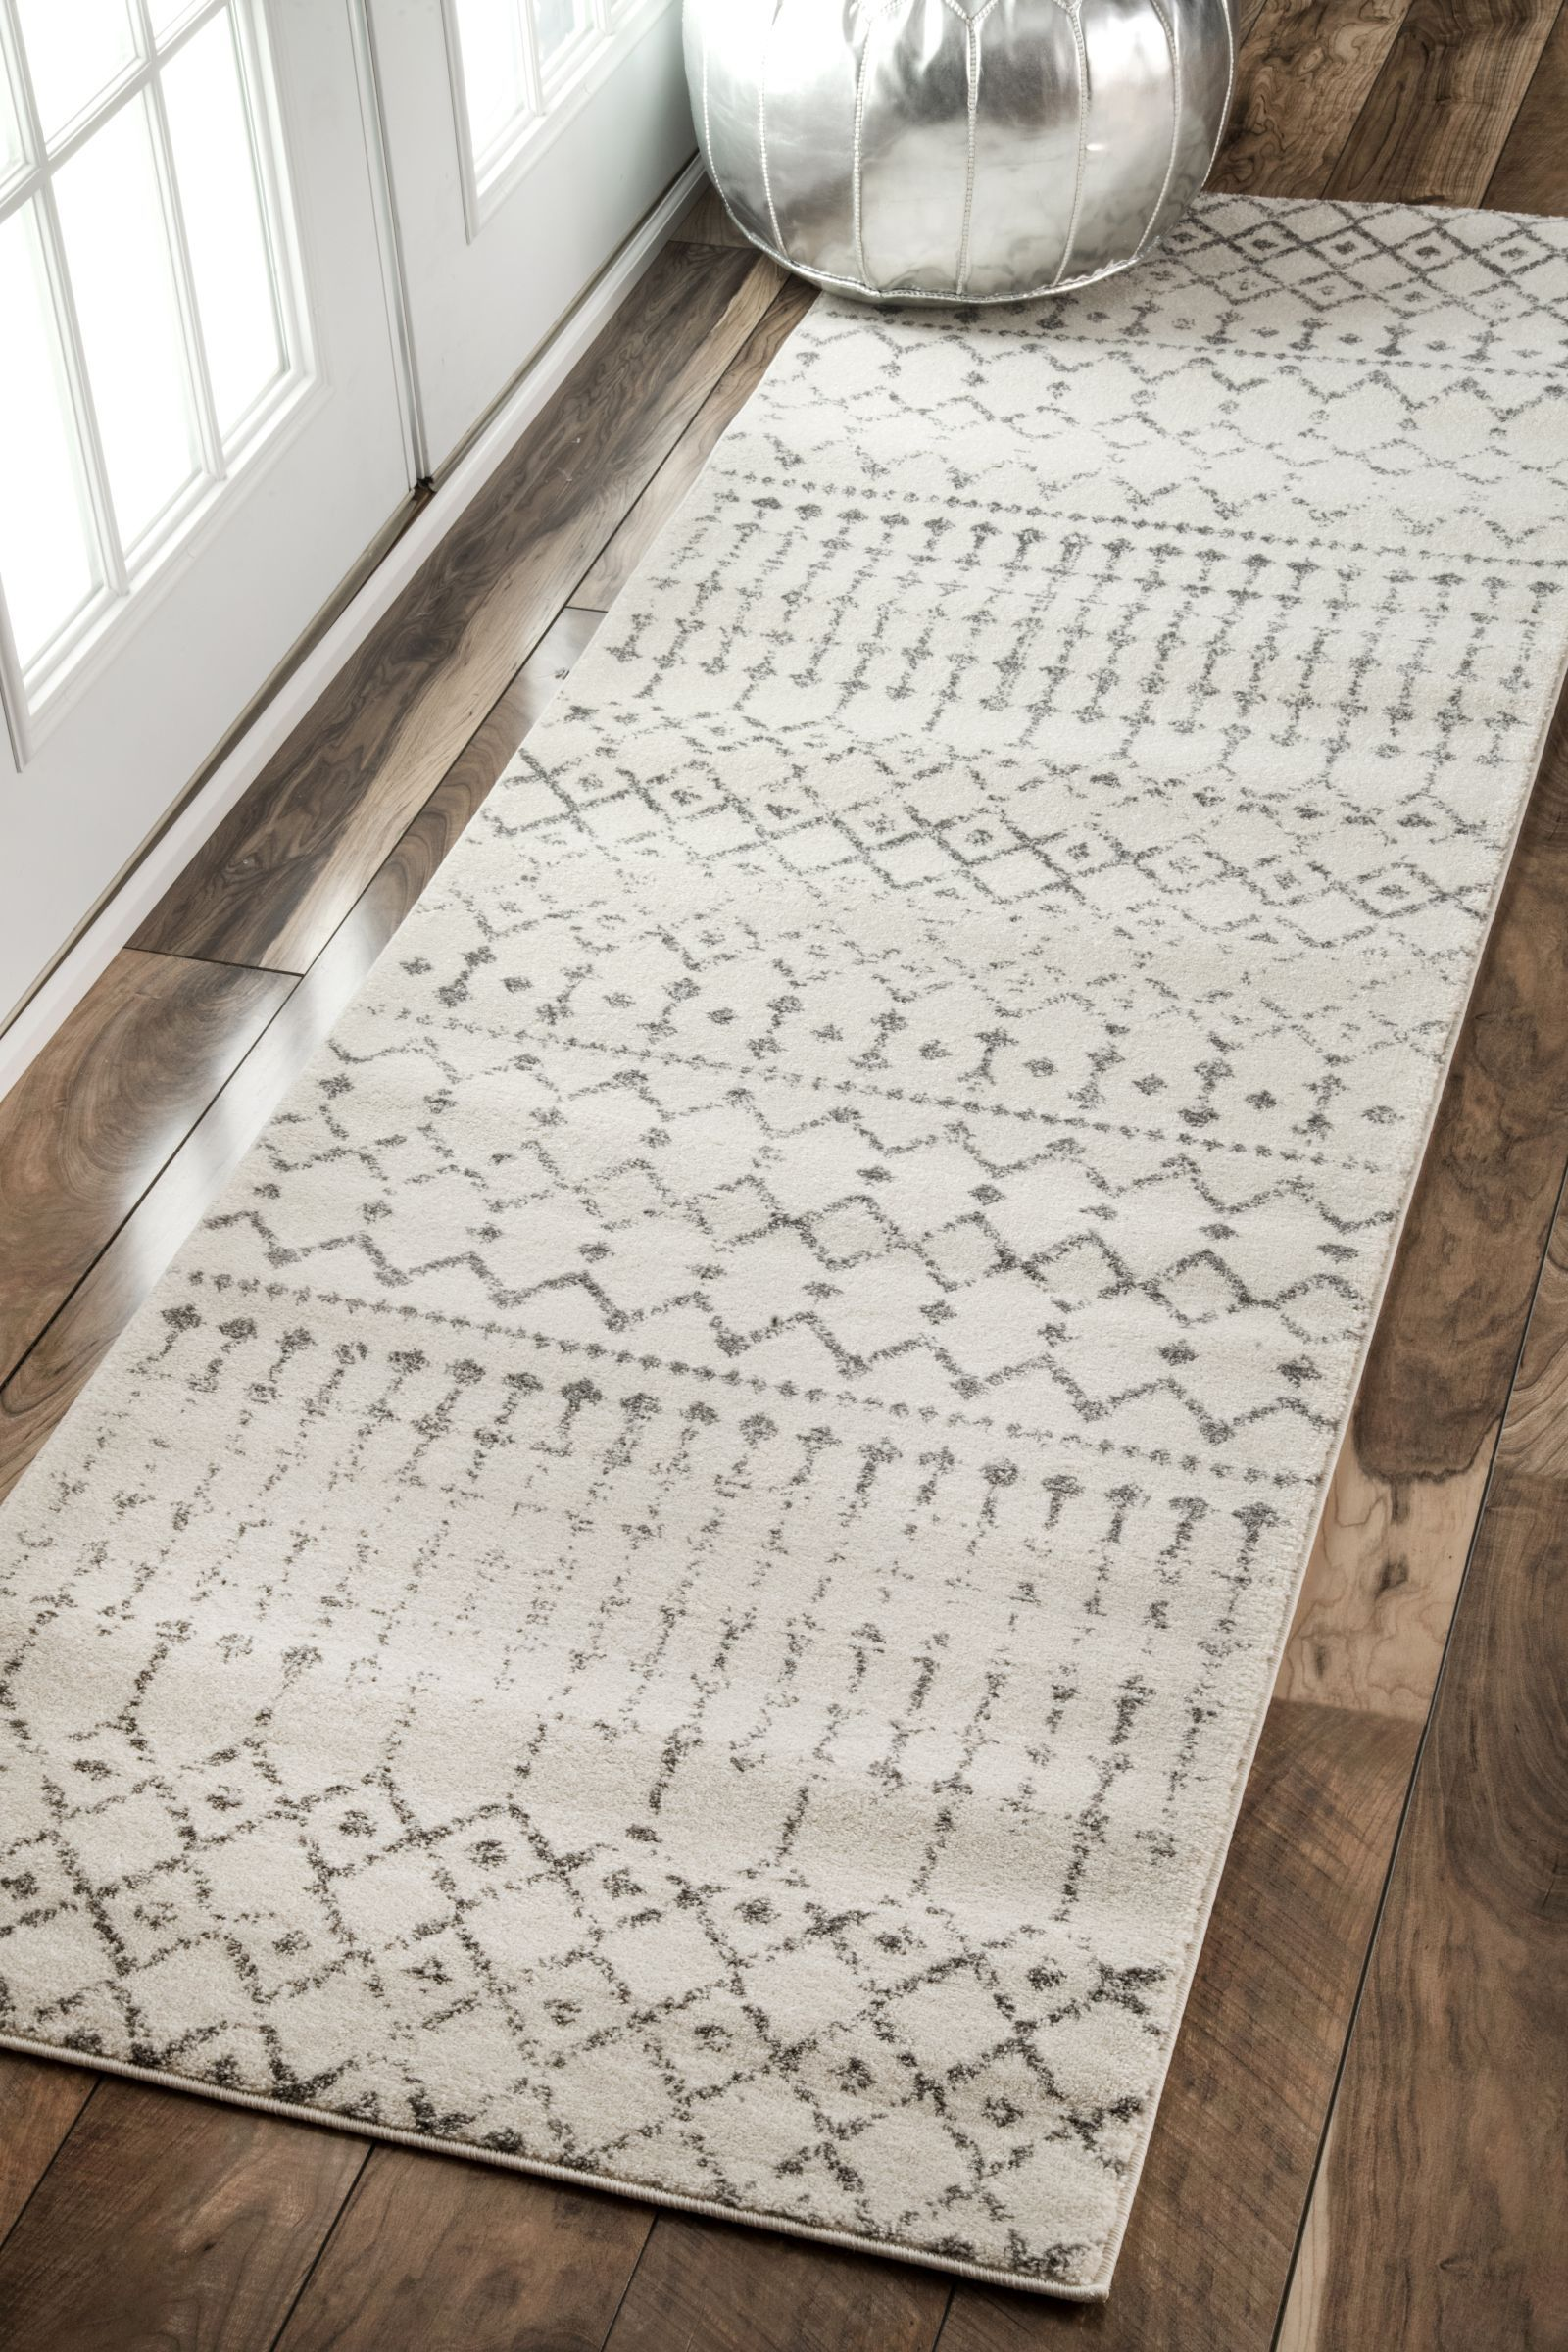 Foyer Rugs And Runners : Rugs usa area in many styles including contemporary